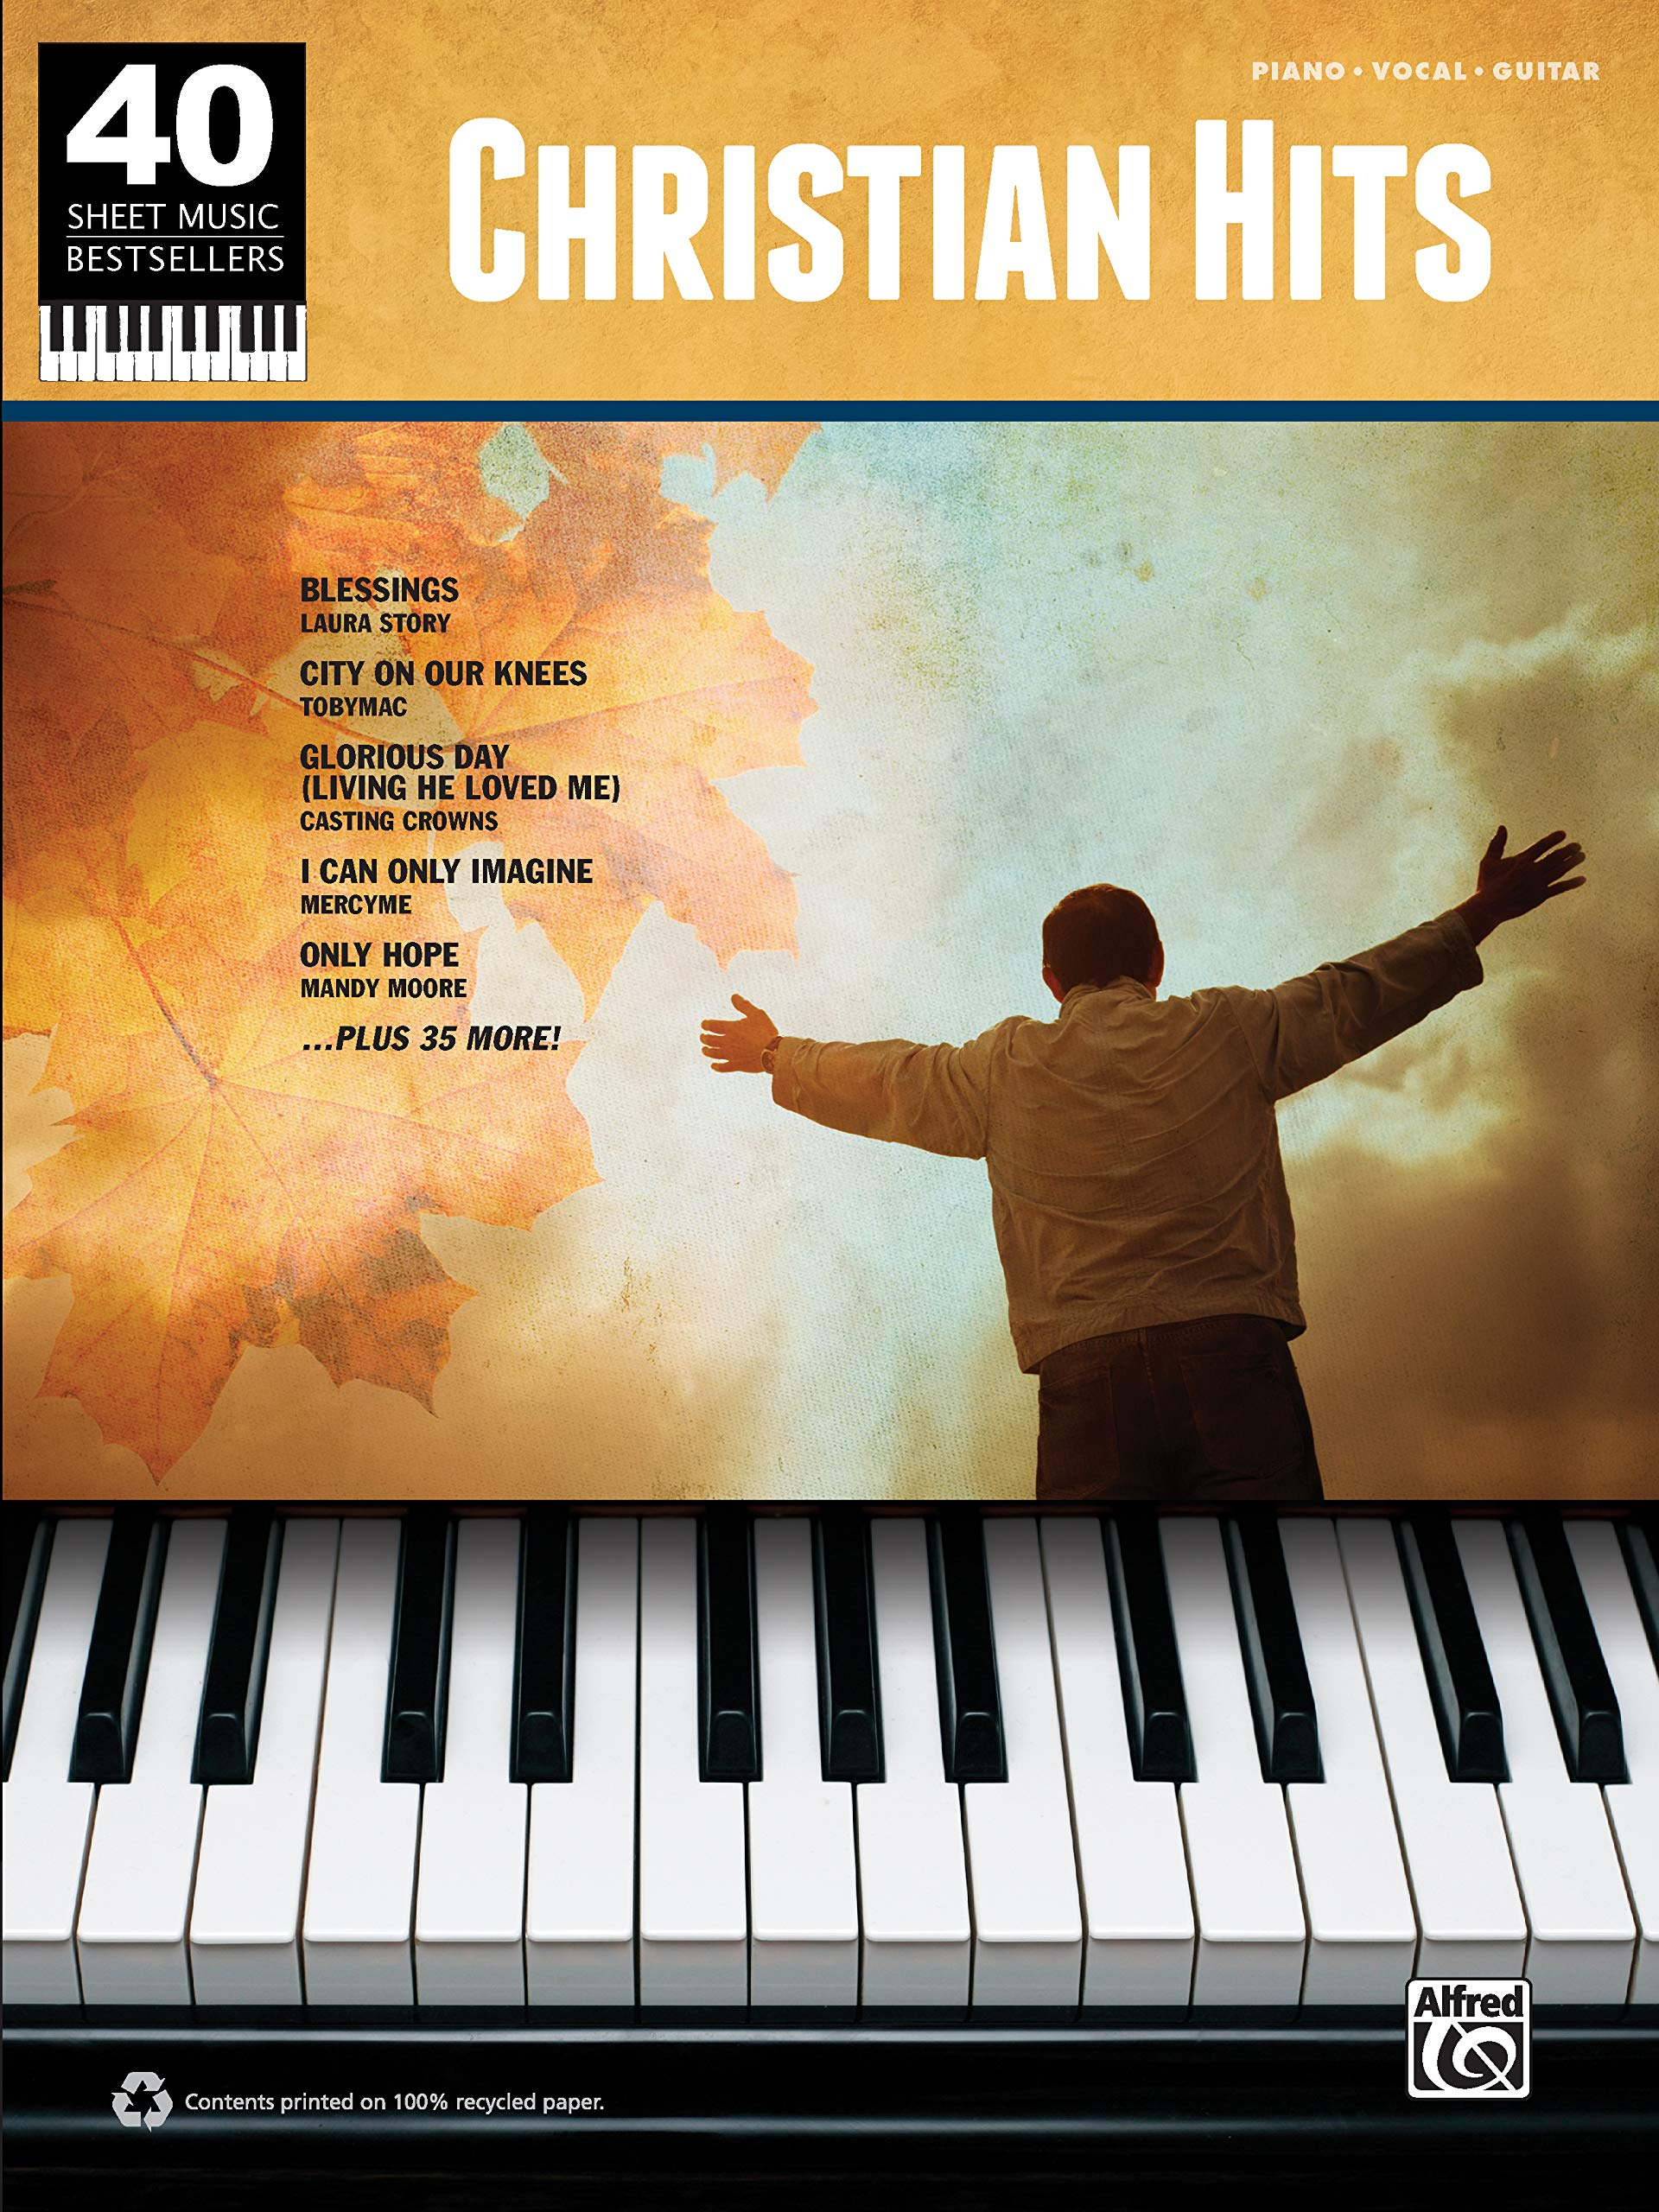 Christian Hits (40 Sheet Music Bestsellers): Amazon.es: Alfred ...